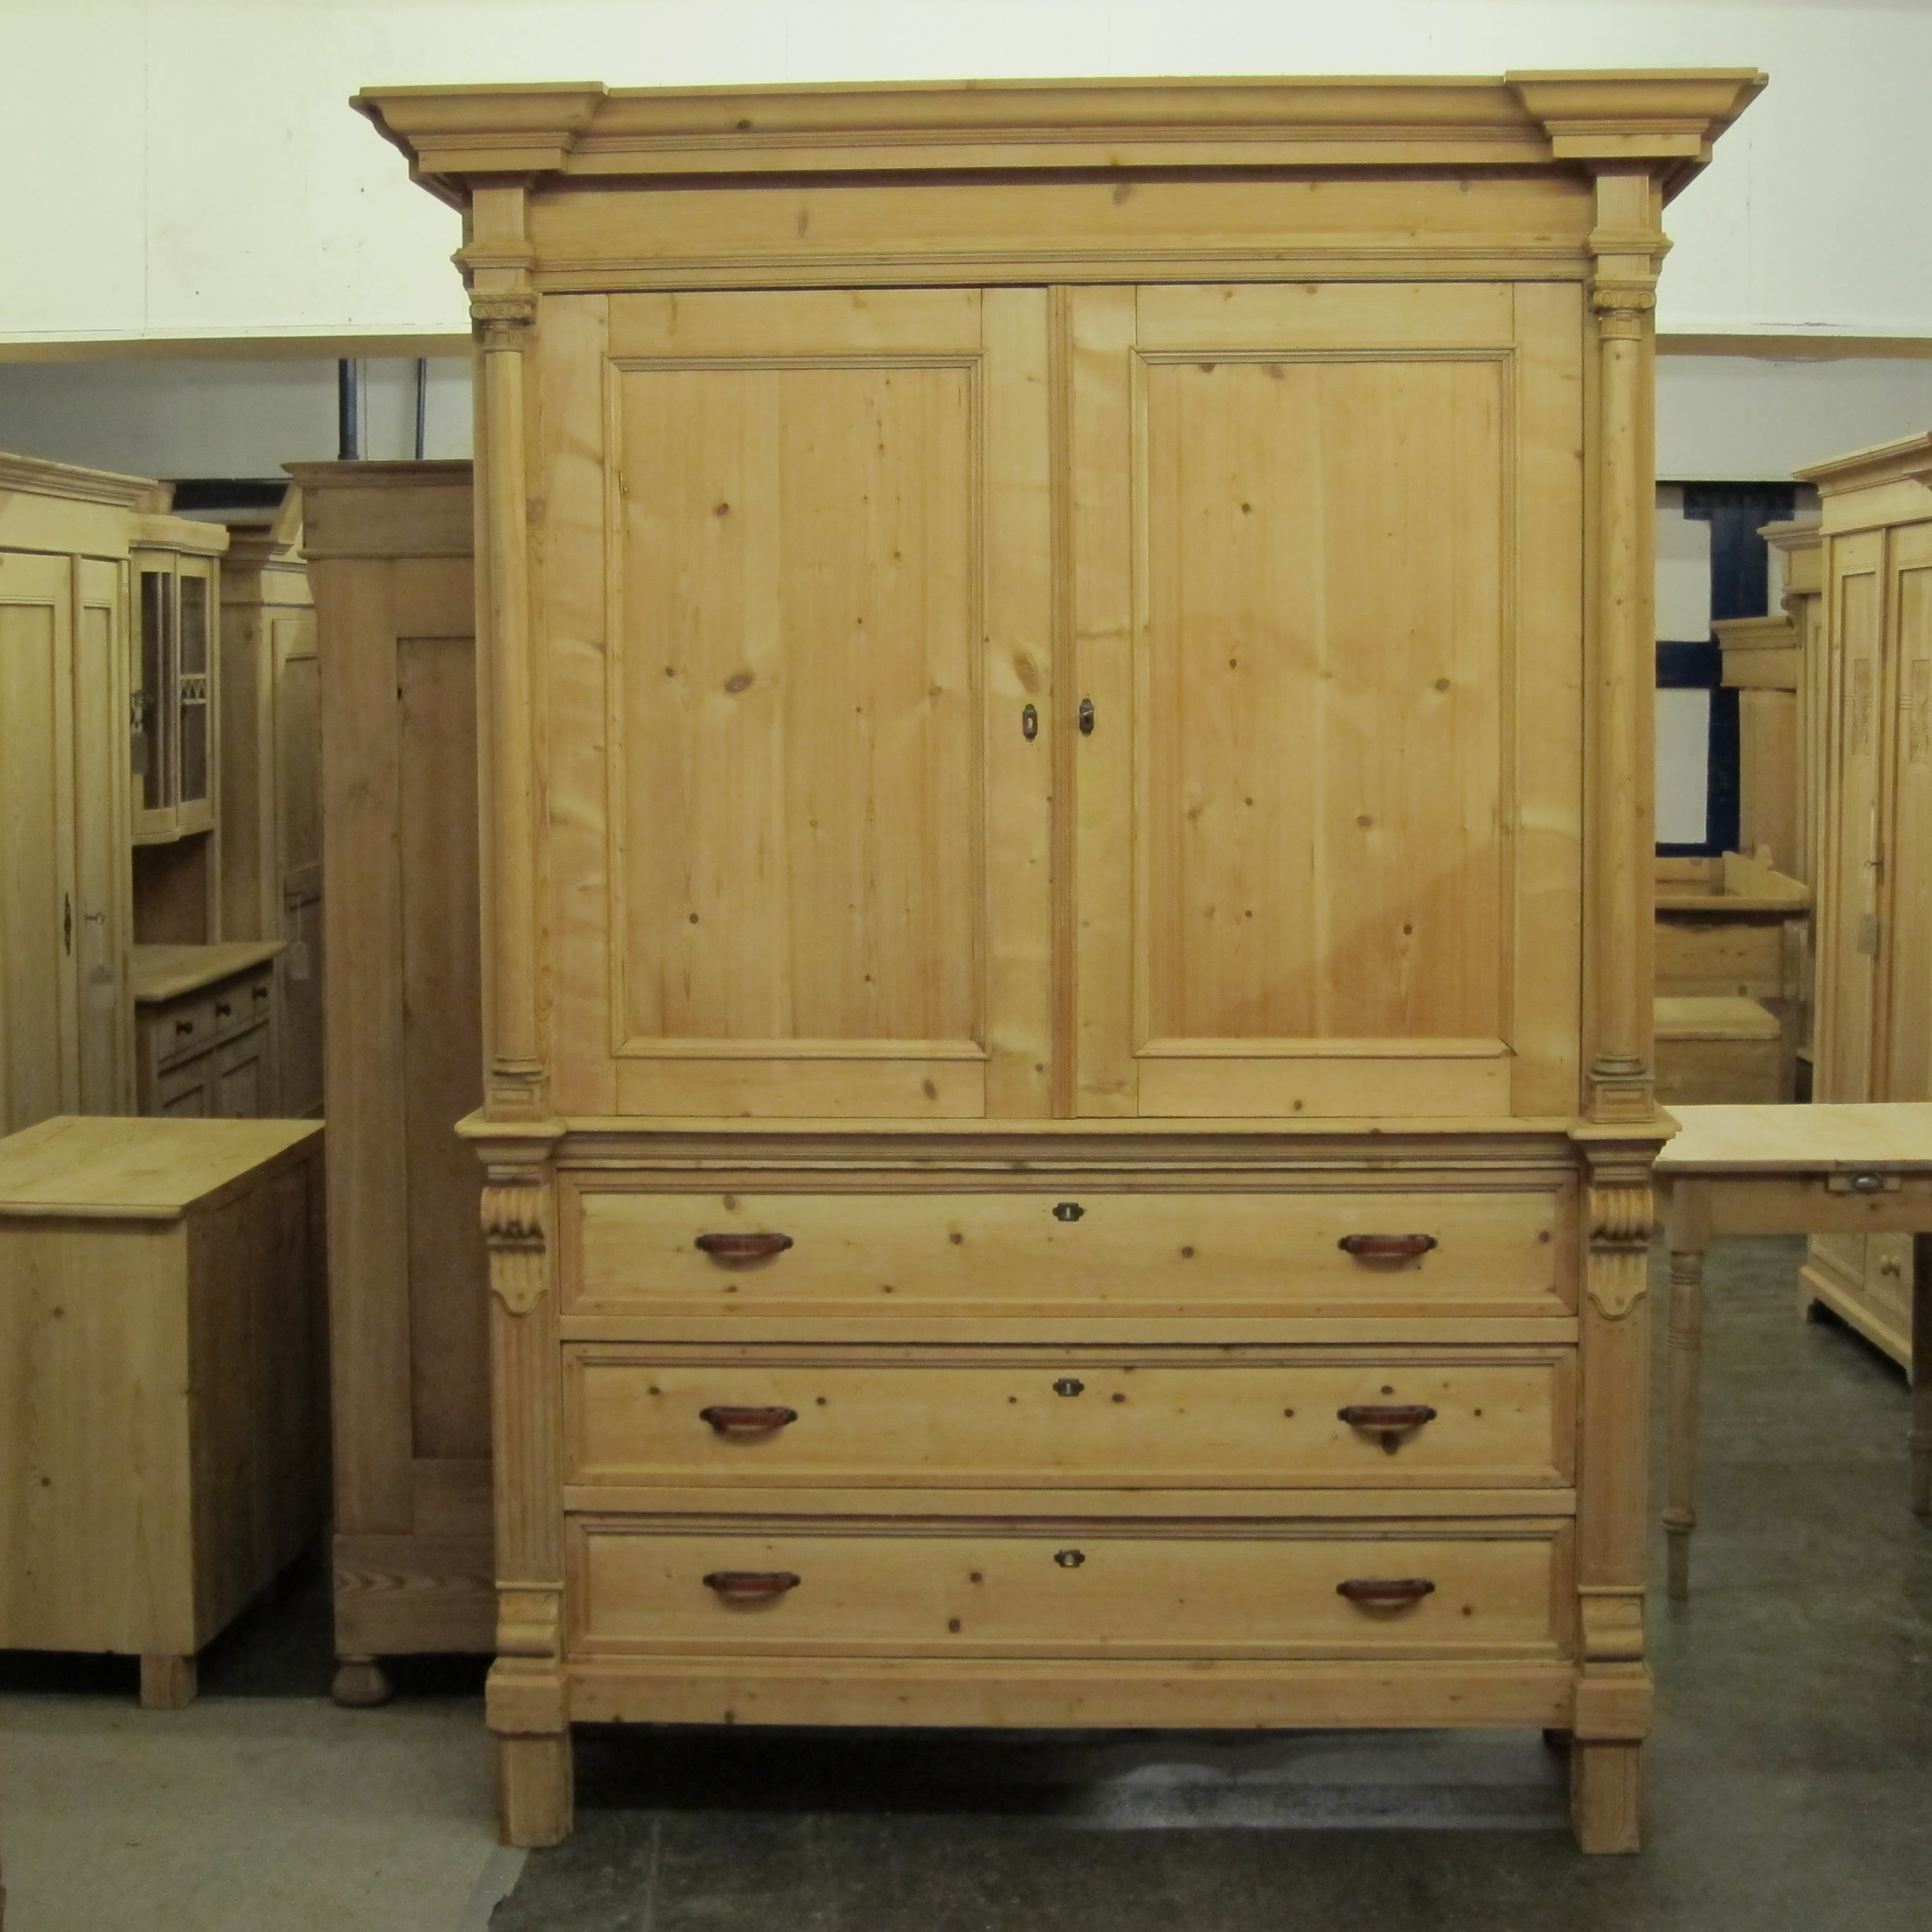 Elegant Very large antique pine linen press - Pinefinders Old Pine Furniture antique pine furniture